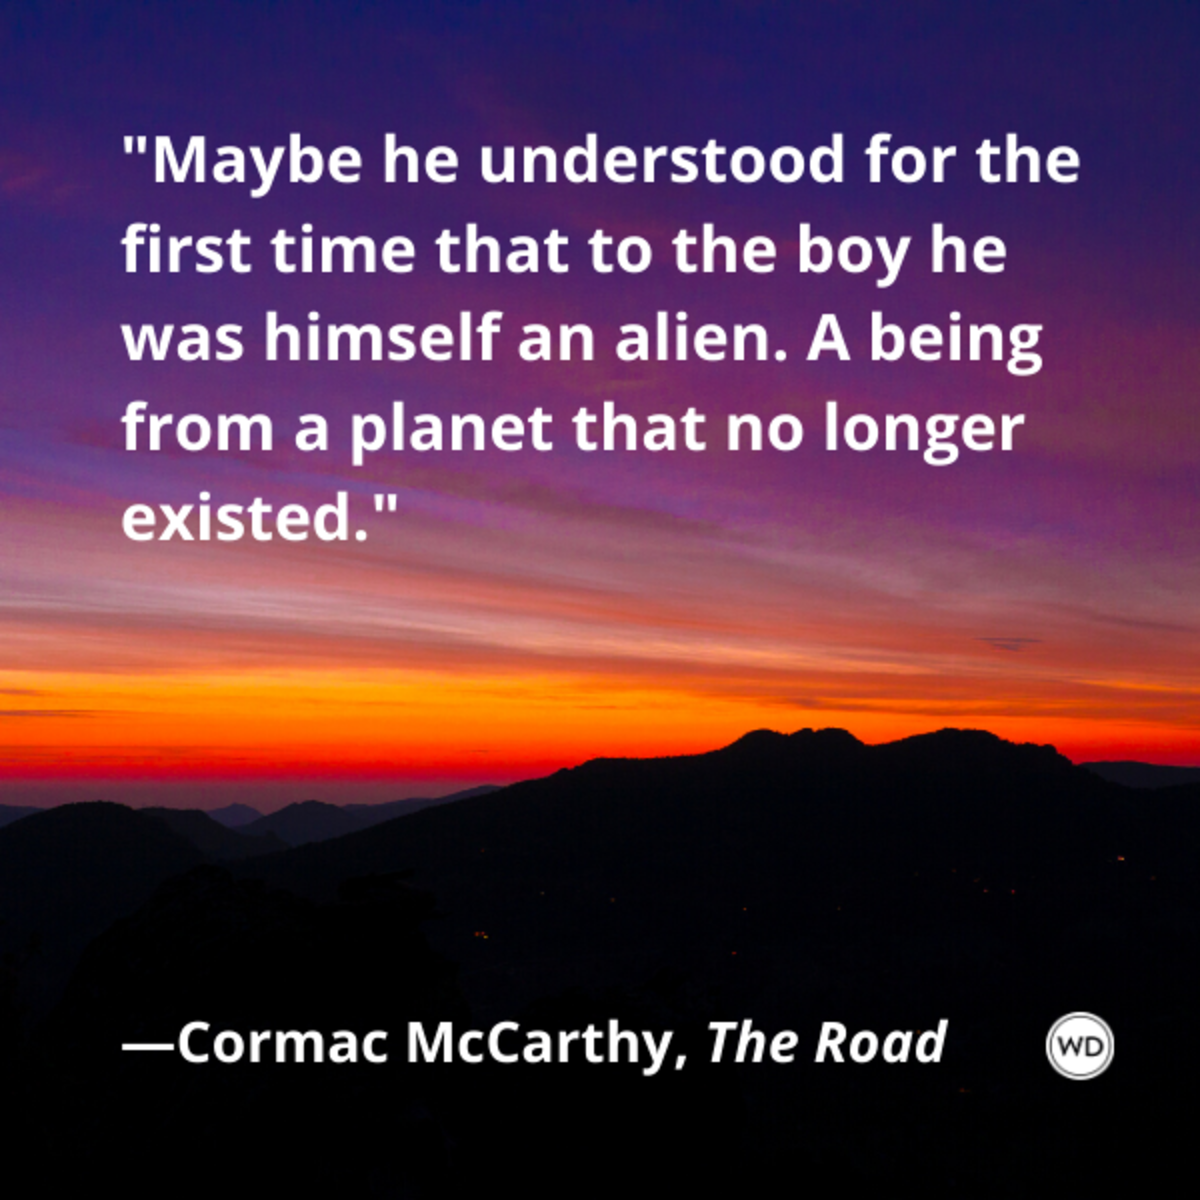 cormac_mccarthy_the_road_quotes_maybe_he_understood_for_the_first_time_that_to_the_boy_he_was_himself_an_alien